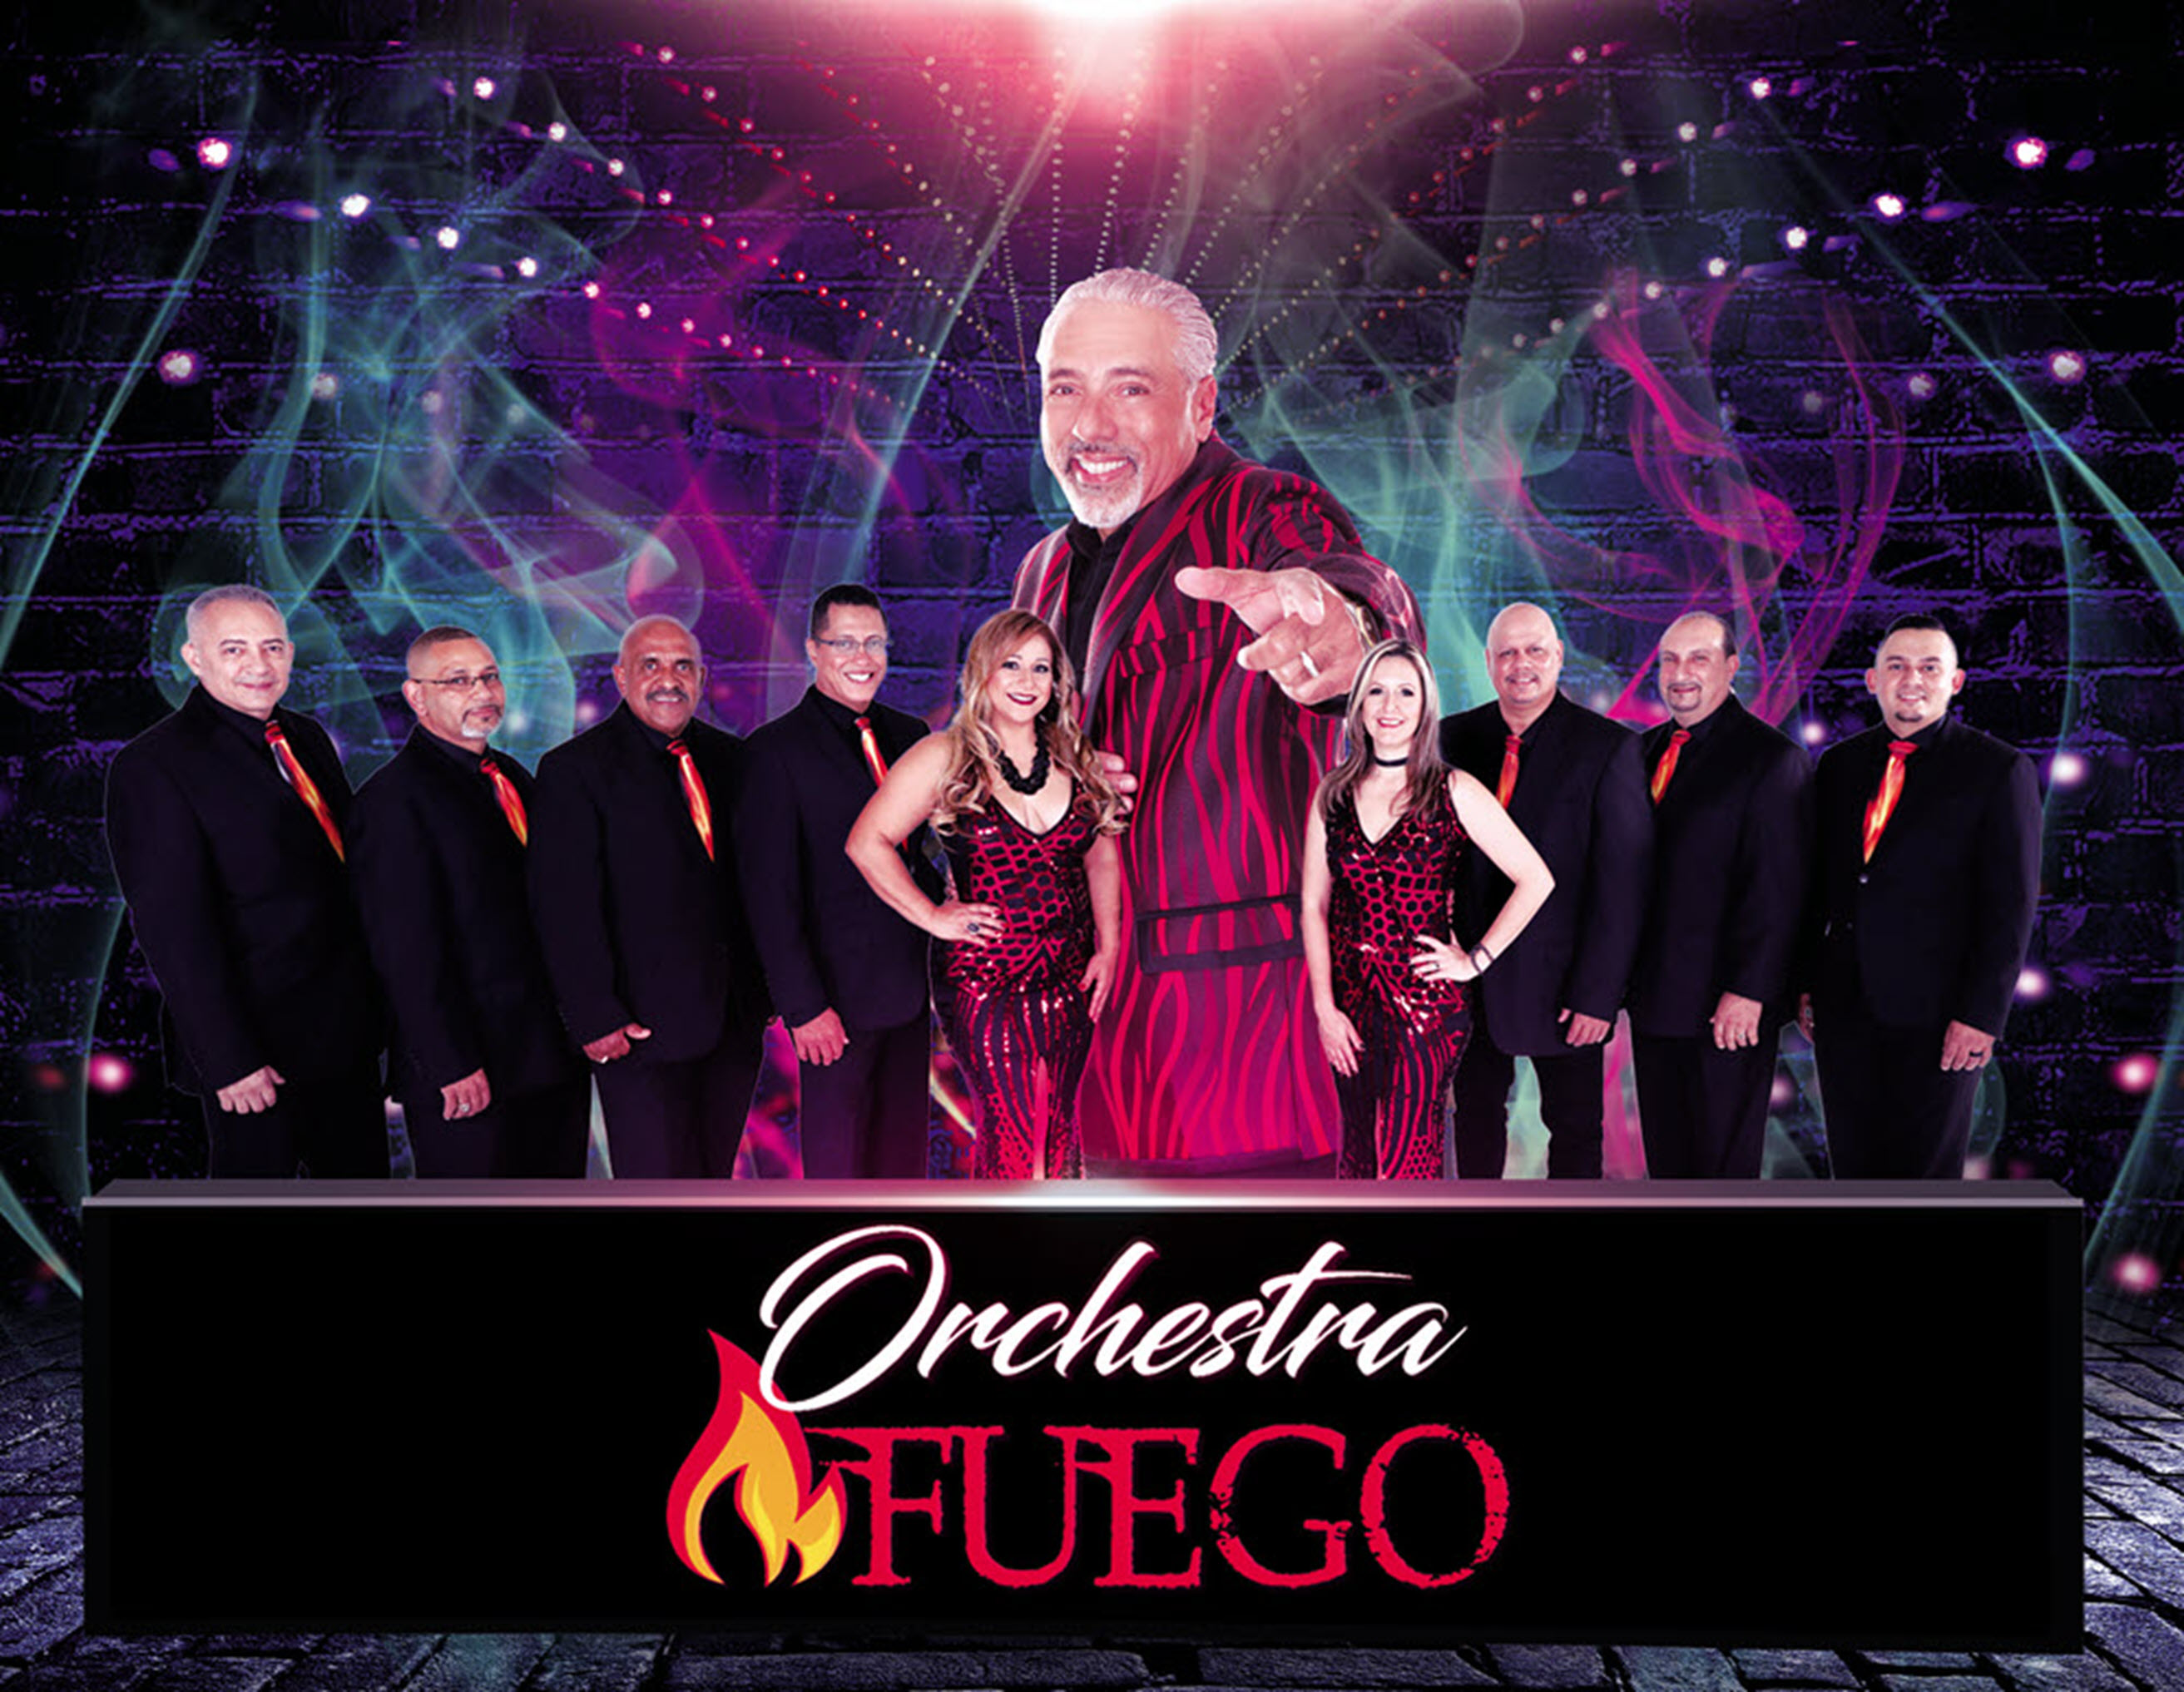 Orchestra Fuego is Paving the way for Latin artist